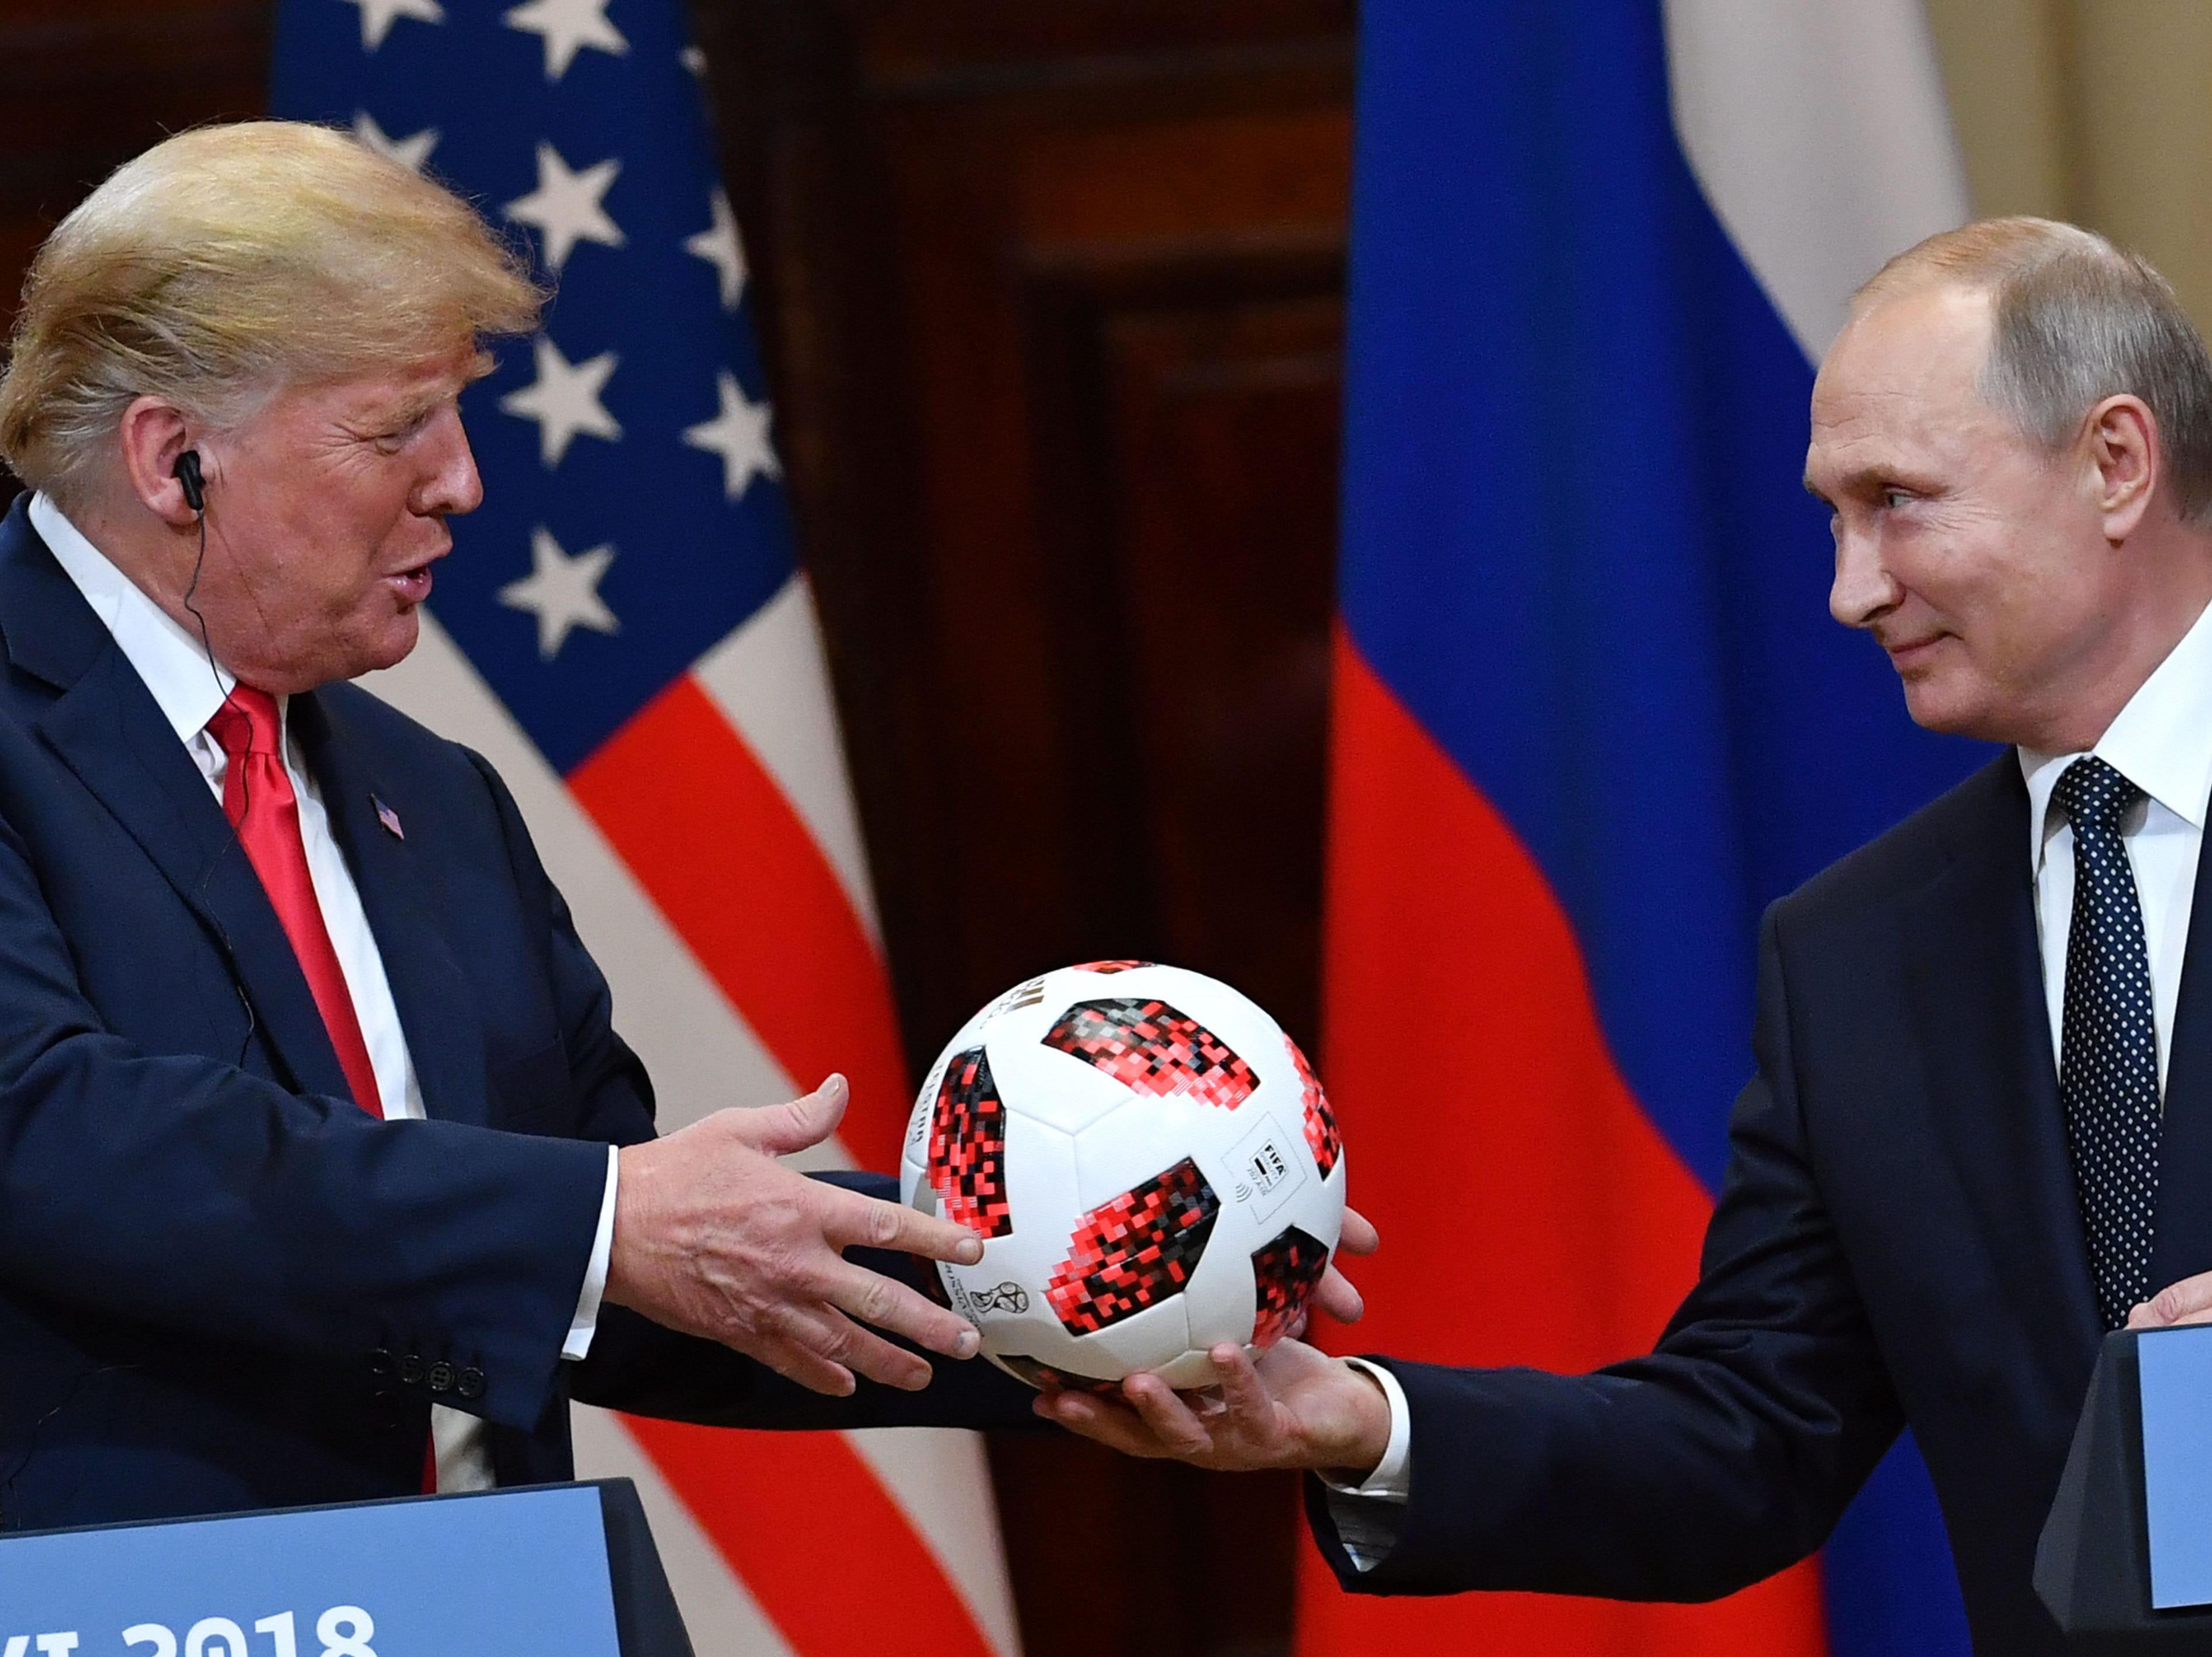 "Russia's President Vladimir Putin offers a ball of the 2018 football World Cup to US President Donald Trump during a joint press conference after a meeting at the Presidential Palace in Helsinki, on July 16, 2018. The US and Russian leaders opened an historic summit in Helsinki, with Donald Trump promising an ""extraordinary relationship"" and Vladimir Putin saying it was high time to thrash out disputes around the world."